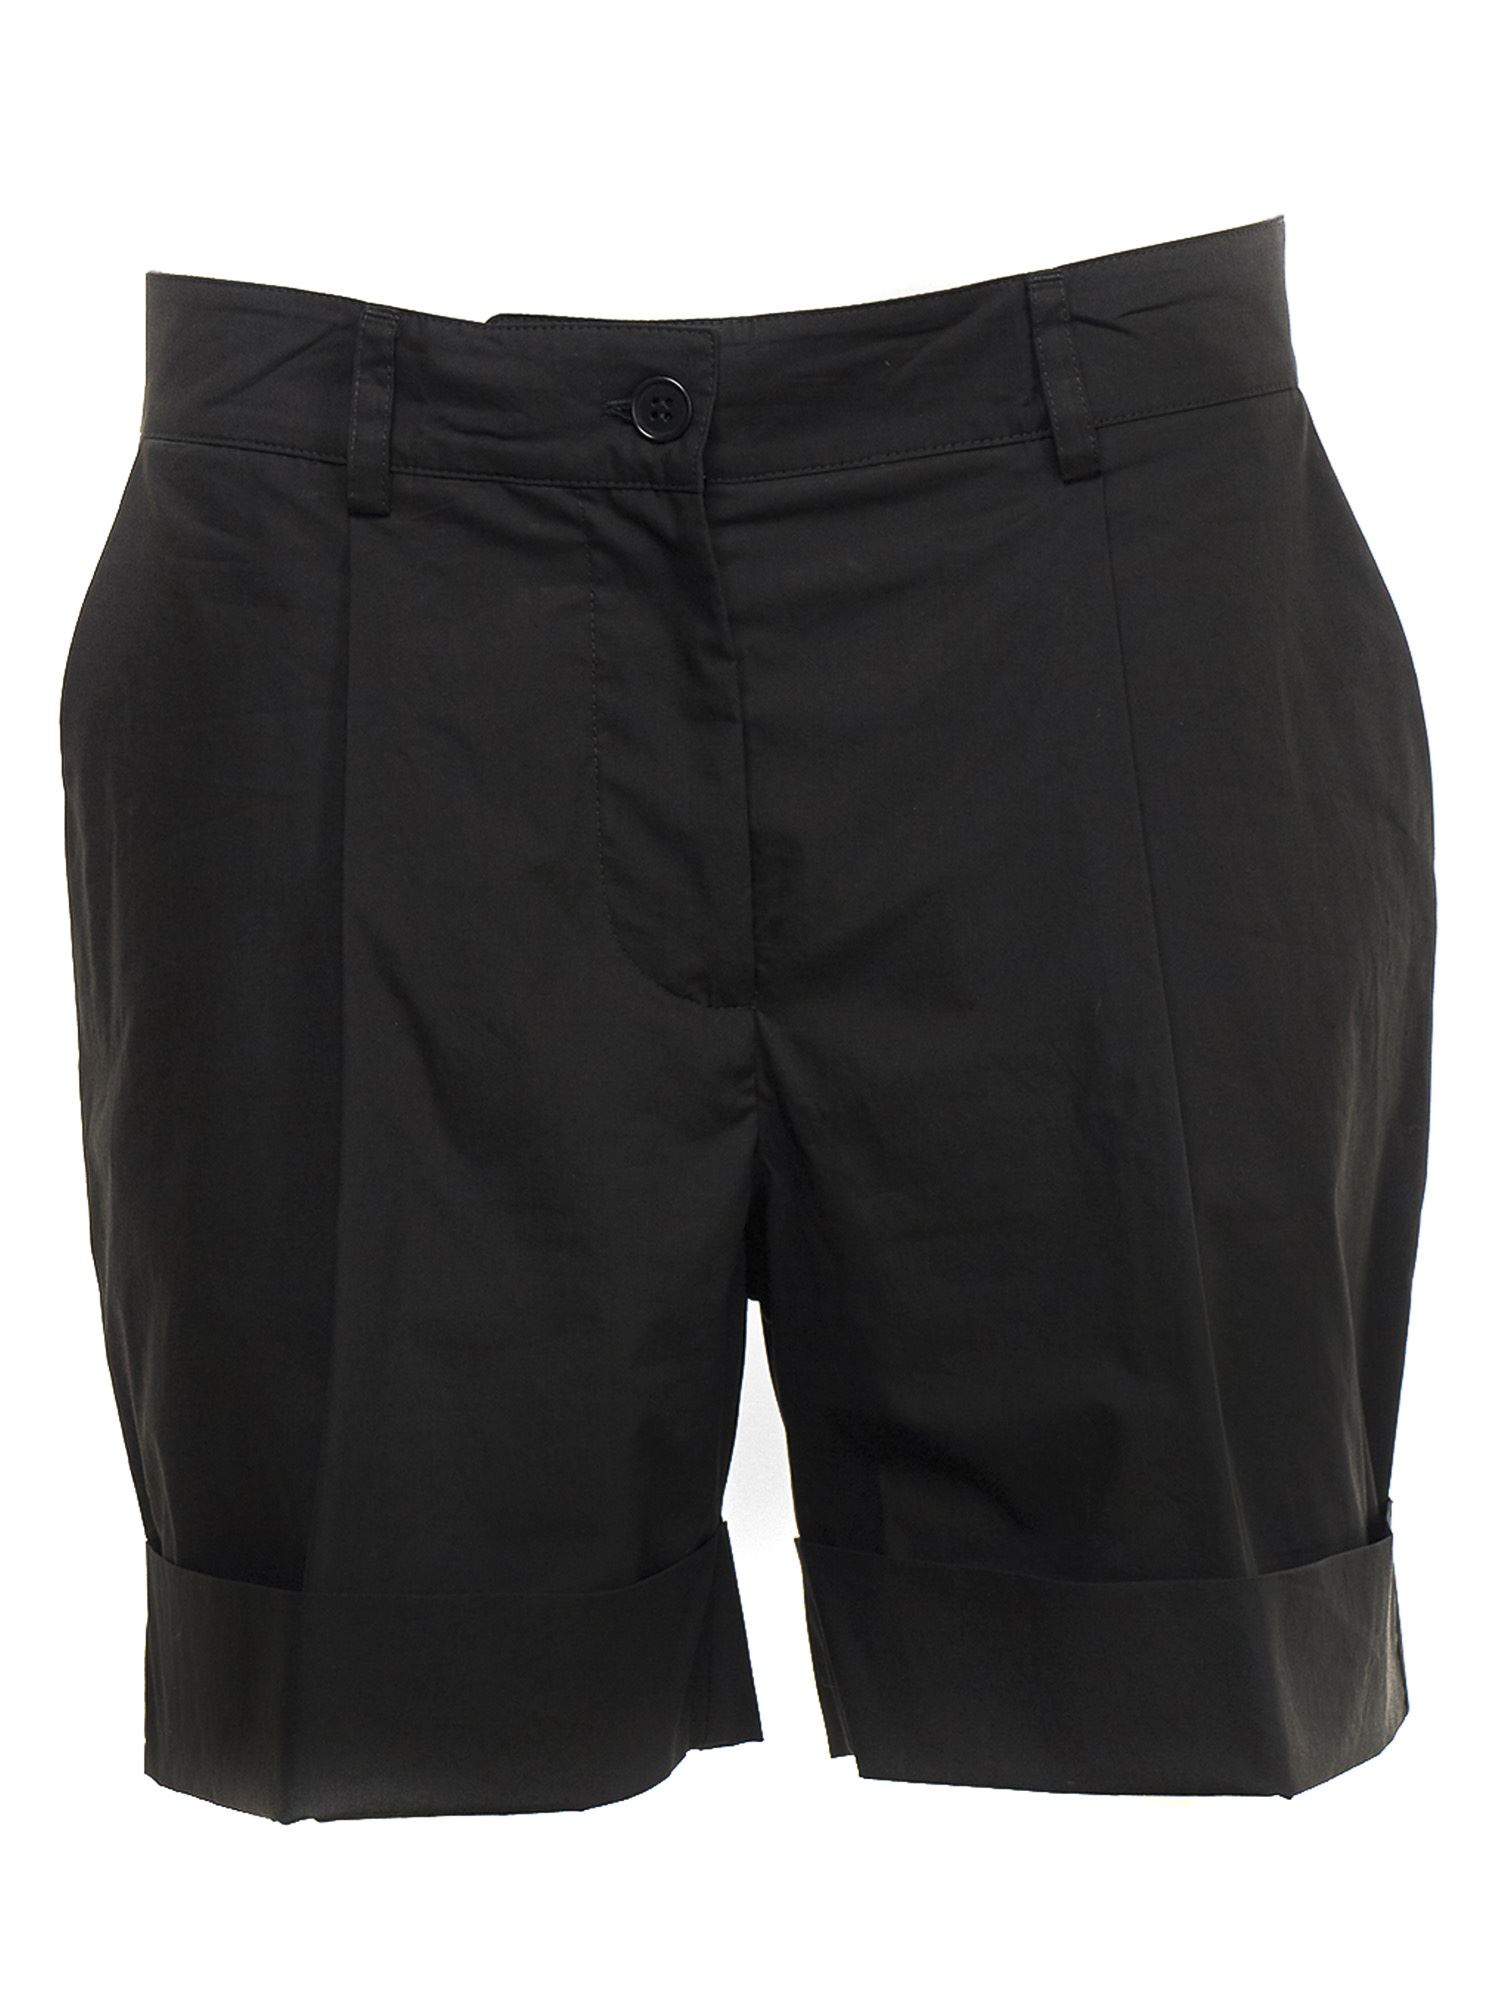 P.a.r.o.s.h. COTTON POPLIN SHORTS IN BLACK